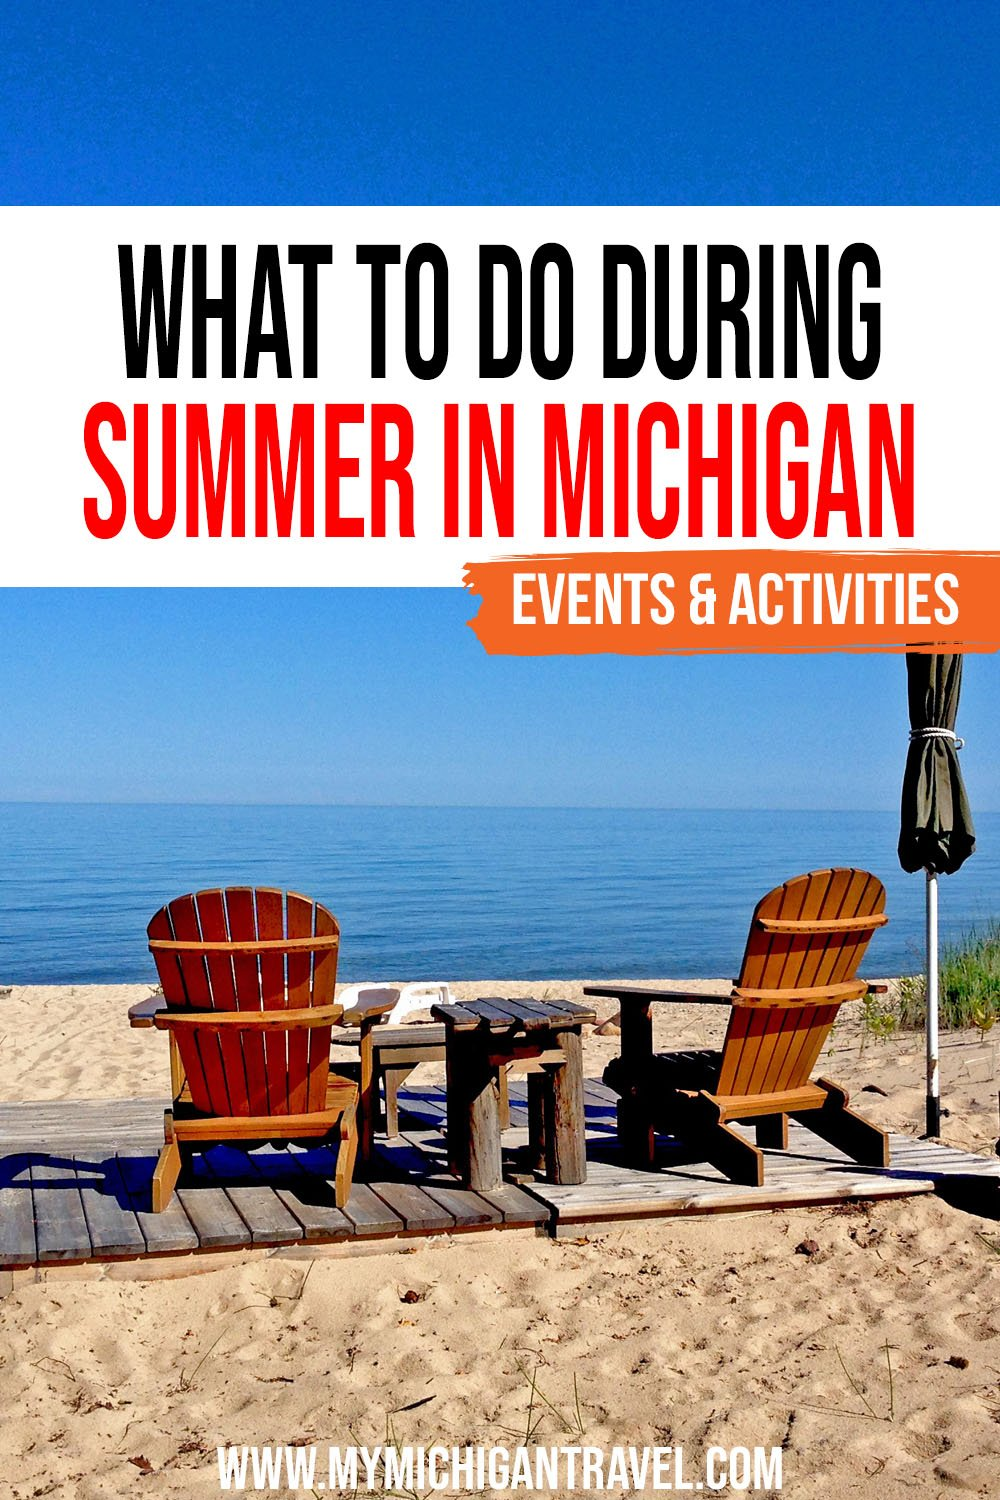 """Photo of wooden chairs on a sandy beach with text overlay reading """"What to do during summer in Michigan - events & activities"""""""